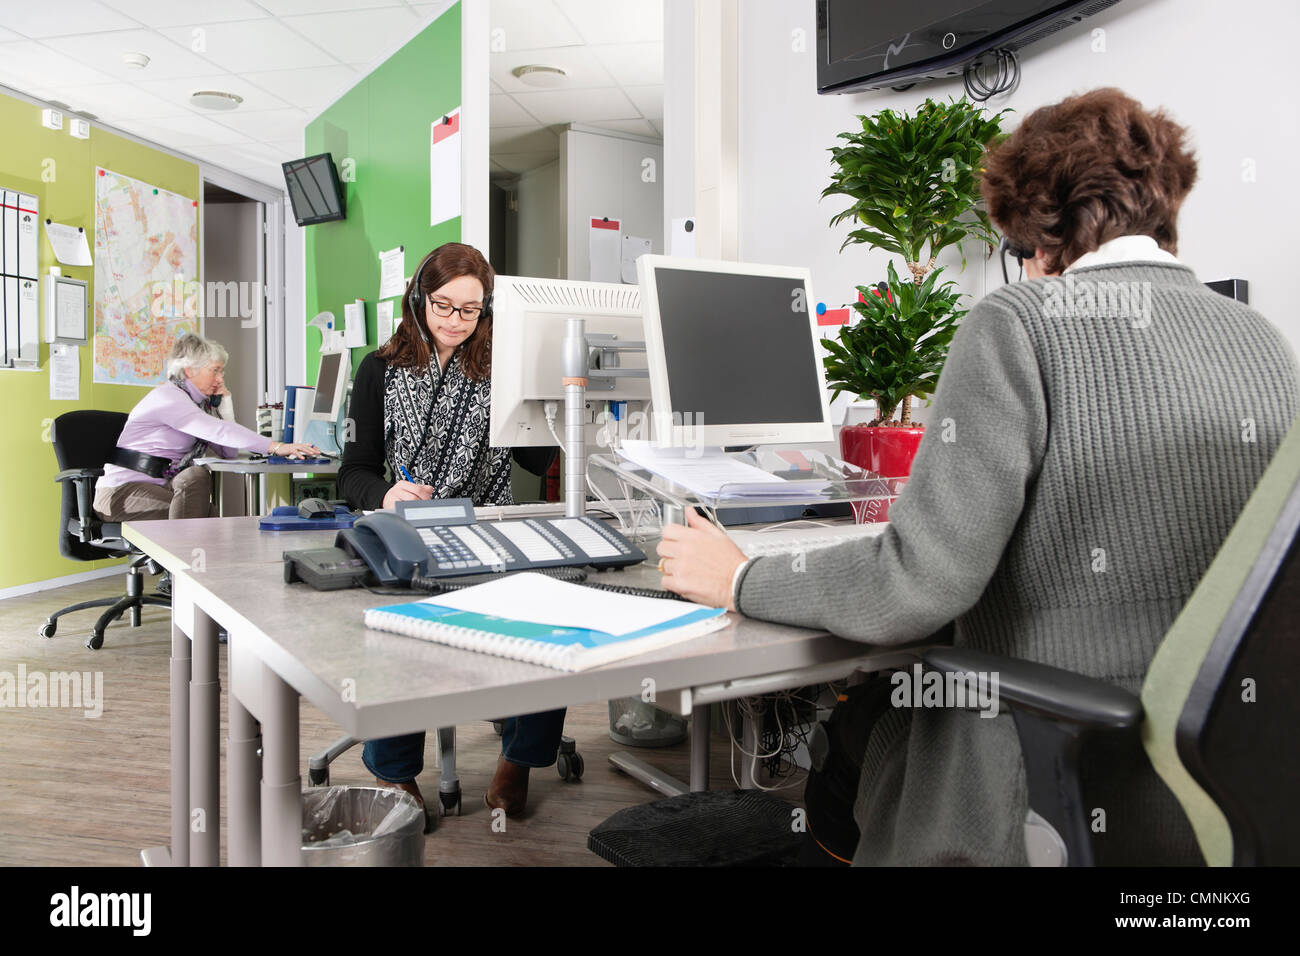 Returners working at the emergency call center of a hospital, answering phone calls from patients, making appointments, - Stock Image